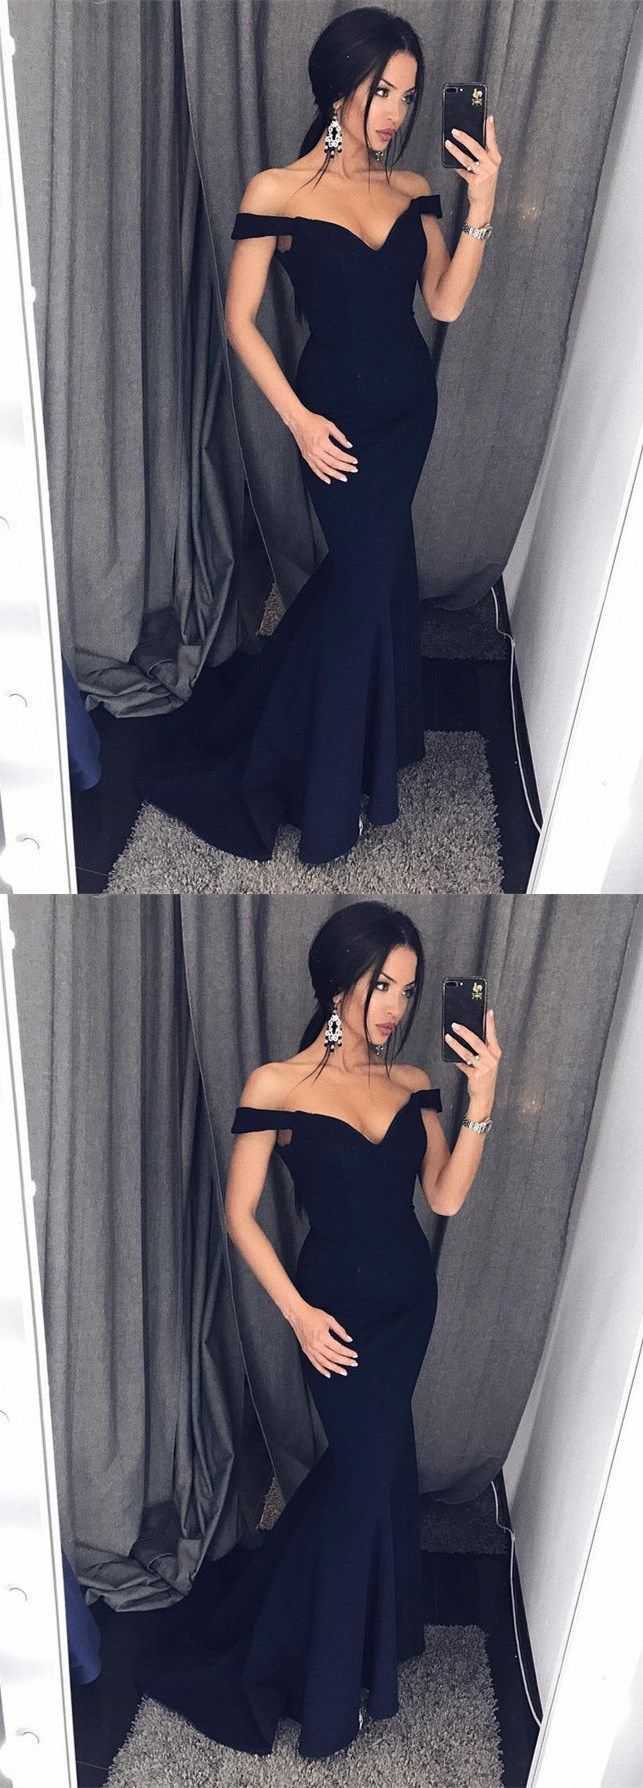 Sexy Mermaid Off-Shoulder Black Satin Long Prom Dr… - Prom shopping is alive and well on Pinterest. Compare prices for this @ Wrhel.com before you commit to buy. #Prom